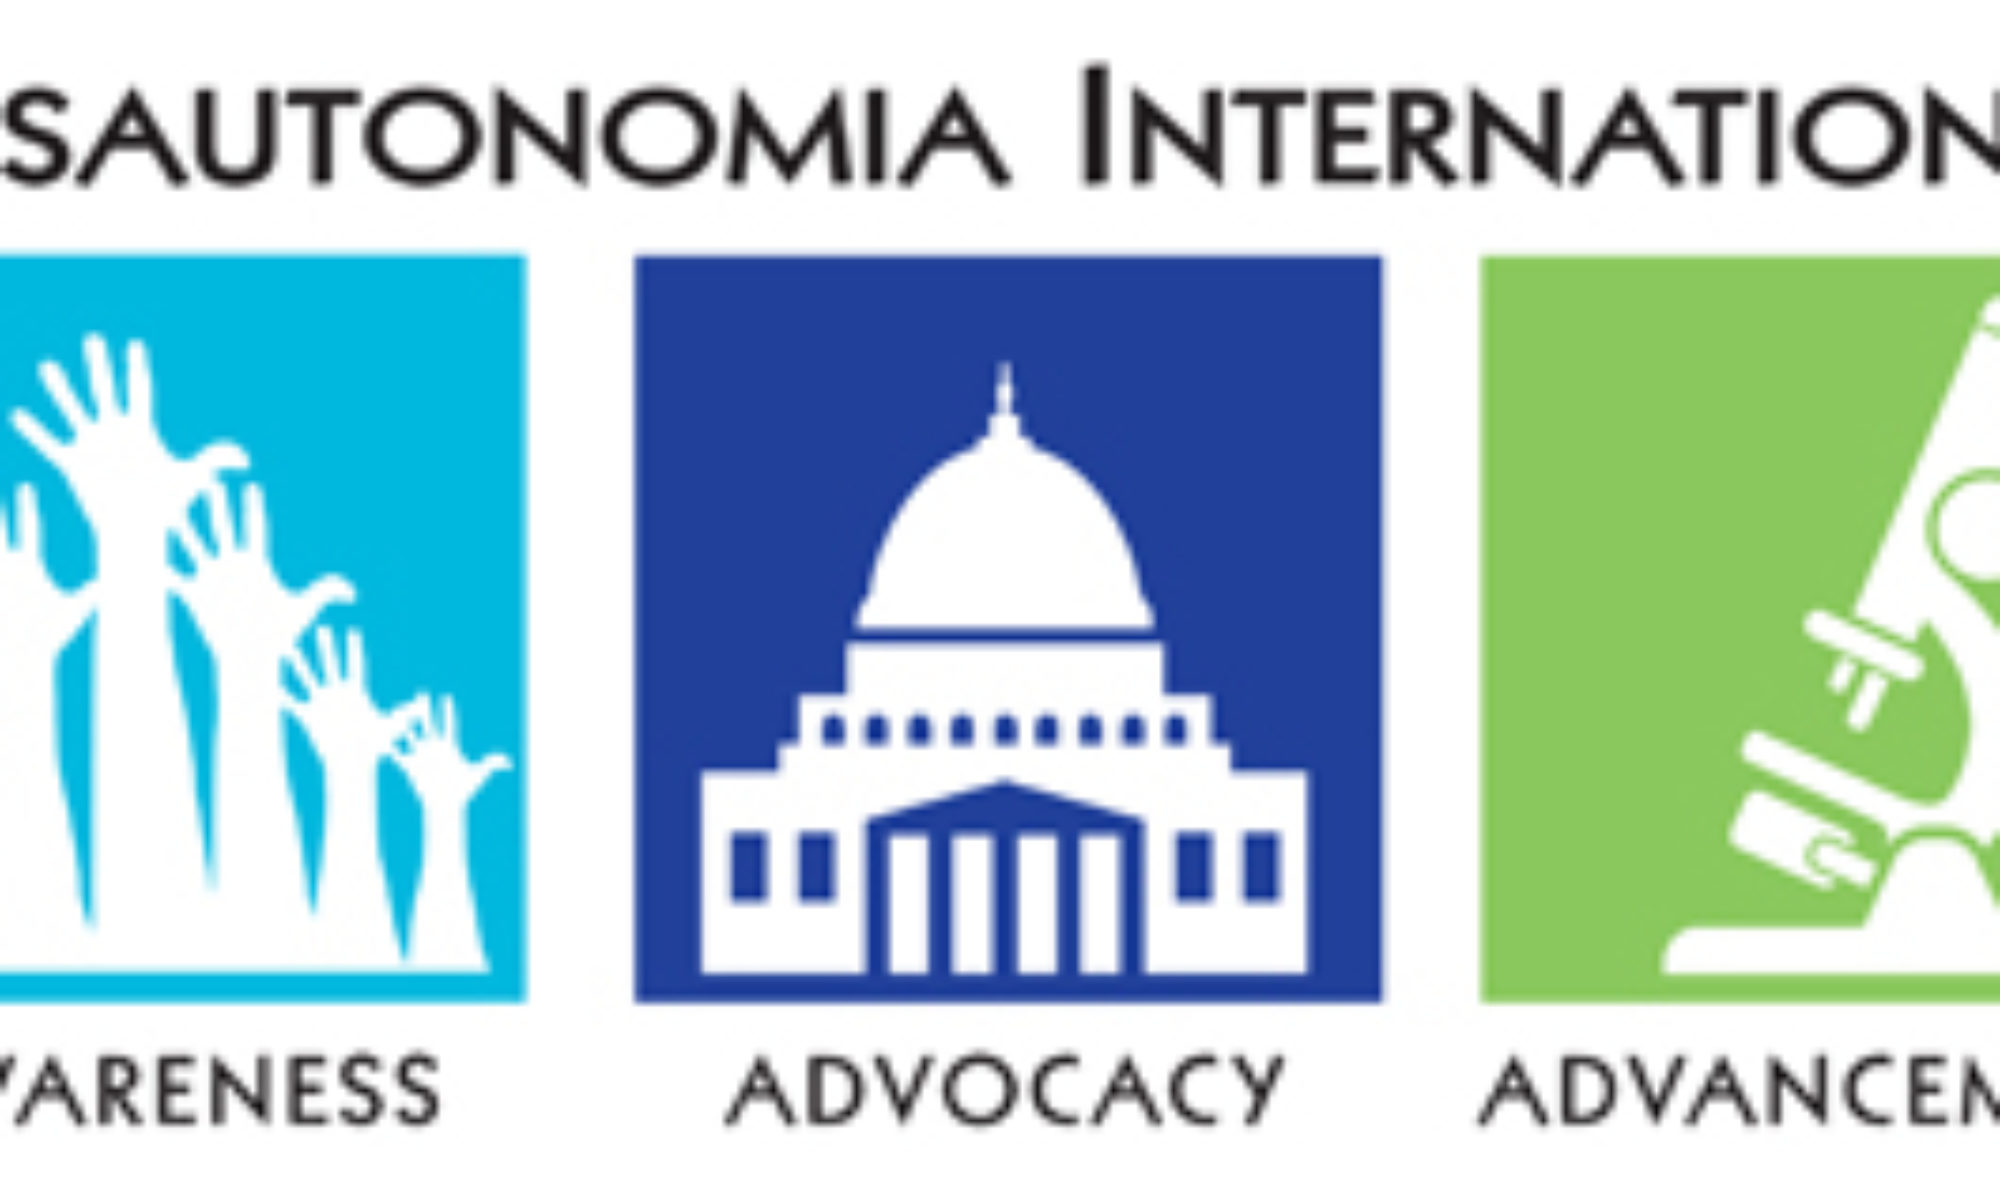 dysautonomia international logo